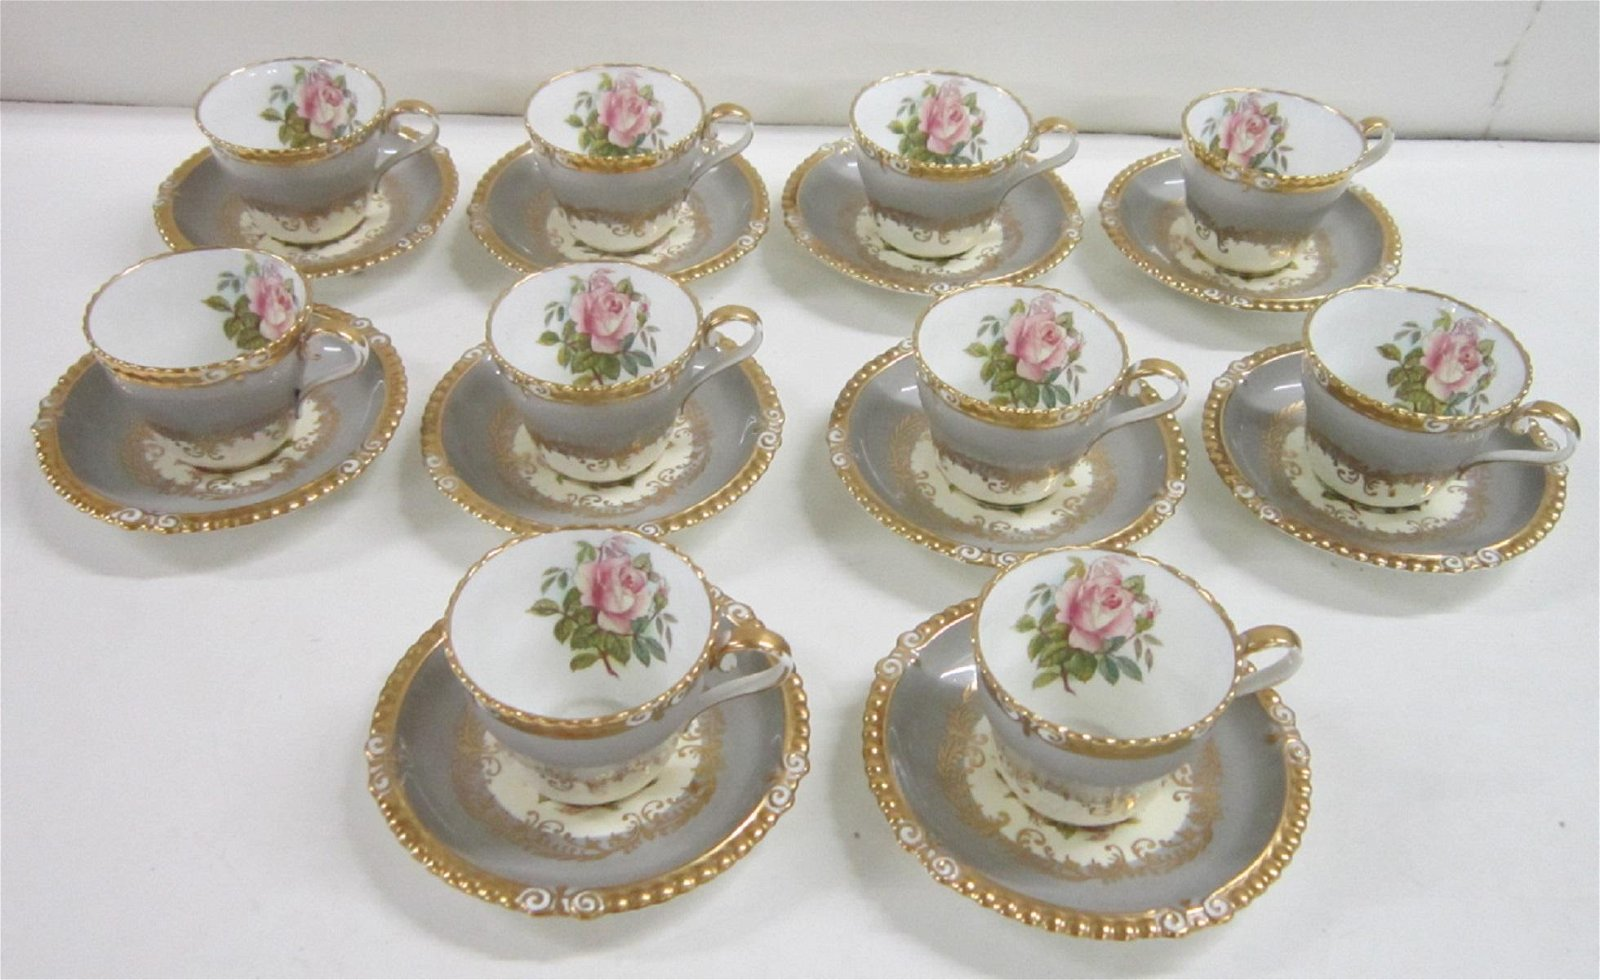 Set of 10 Aynsley Bone China Cups & Saucers